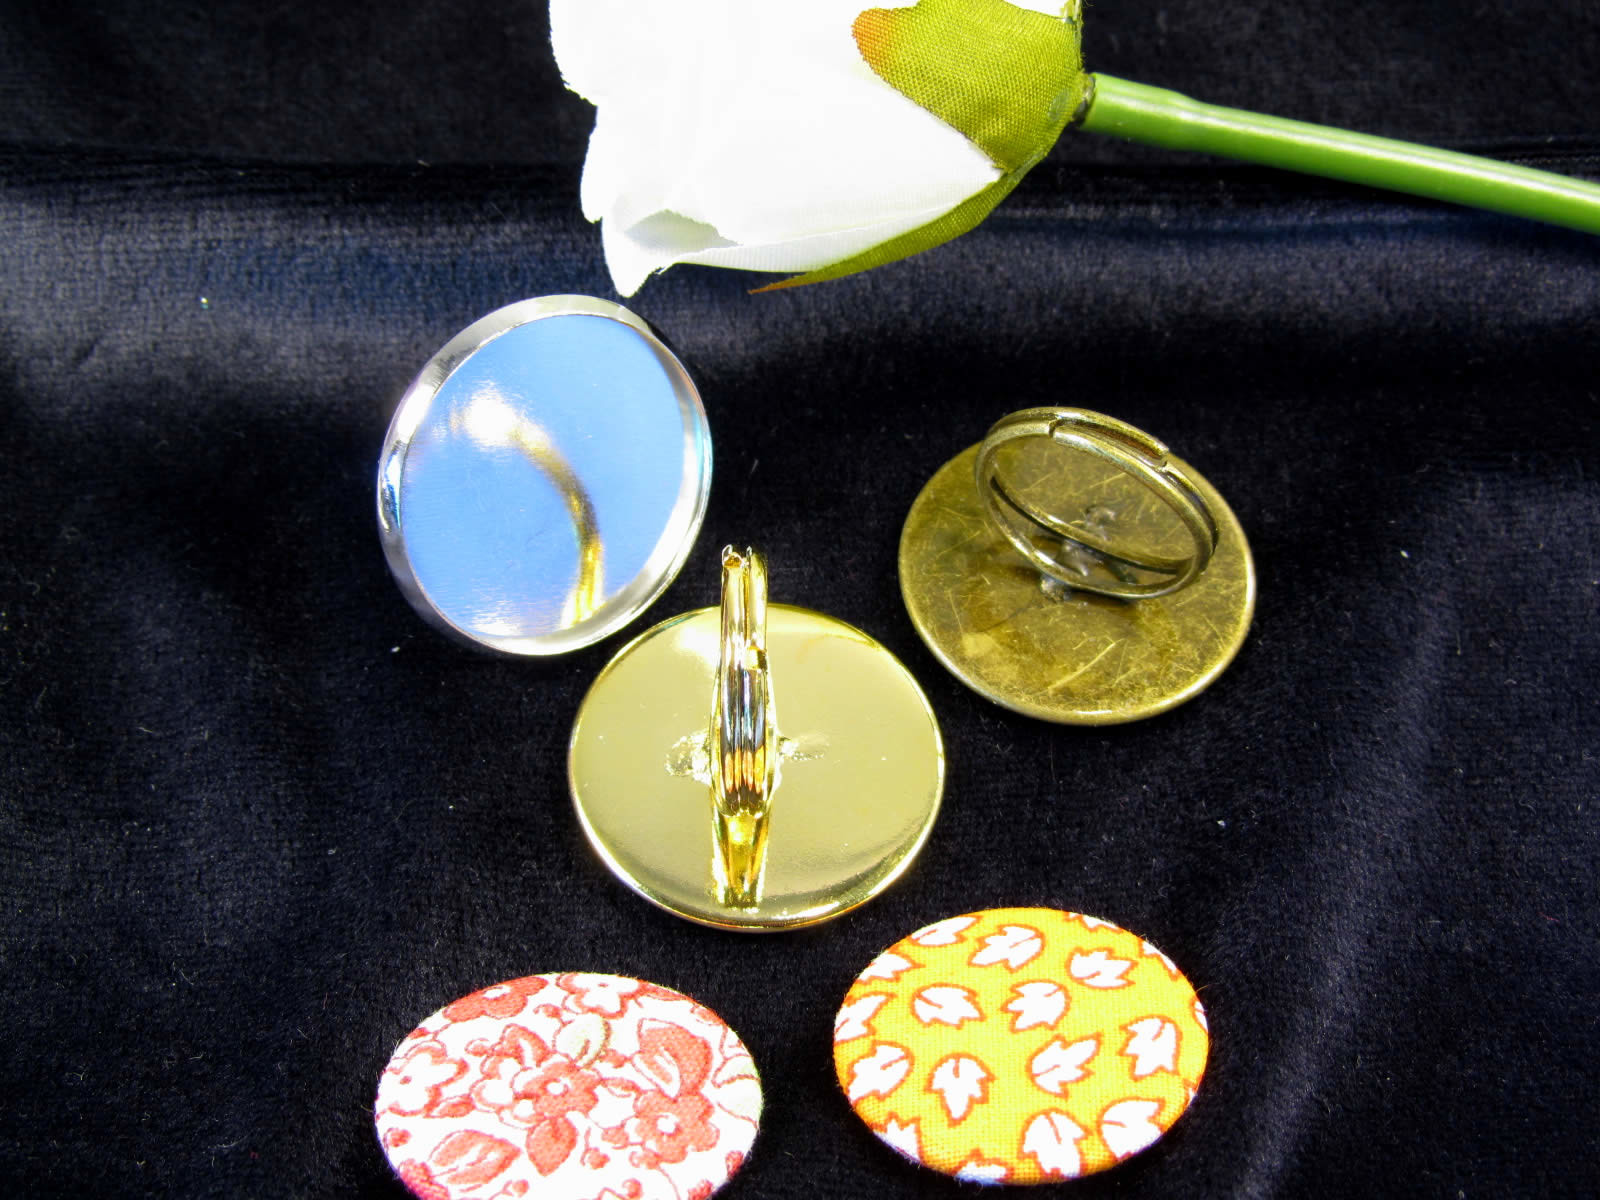 Make these jewelry items using your 25 mm Alond badge machine